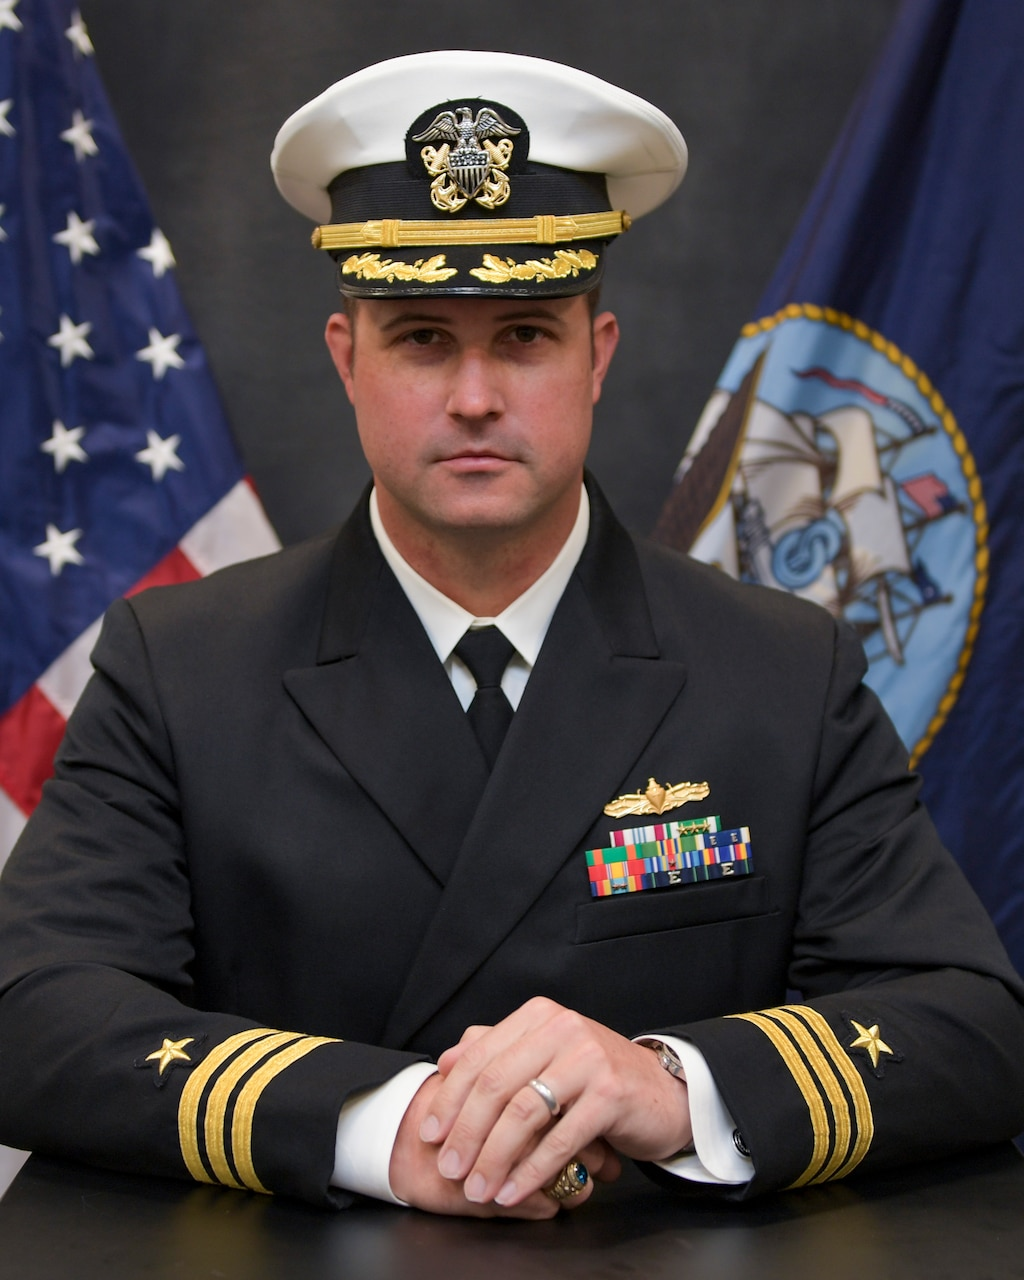 Cmdr. Jim Welsch, executive officer of the Arleigh Burke-class guided-missile destroyer USS Cole (DDG 67), poses for a studio portrait.